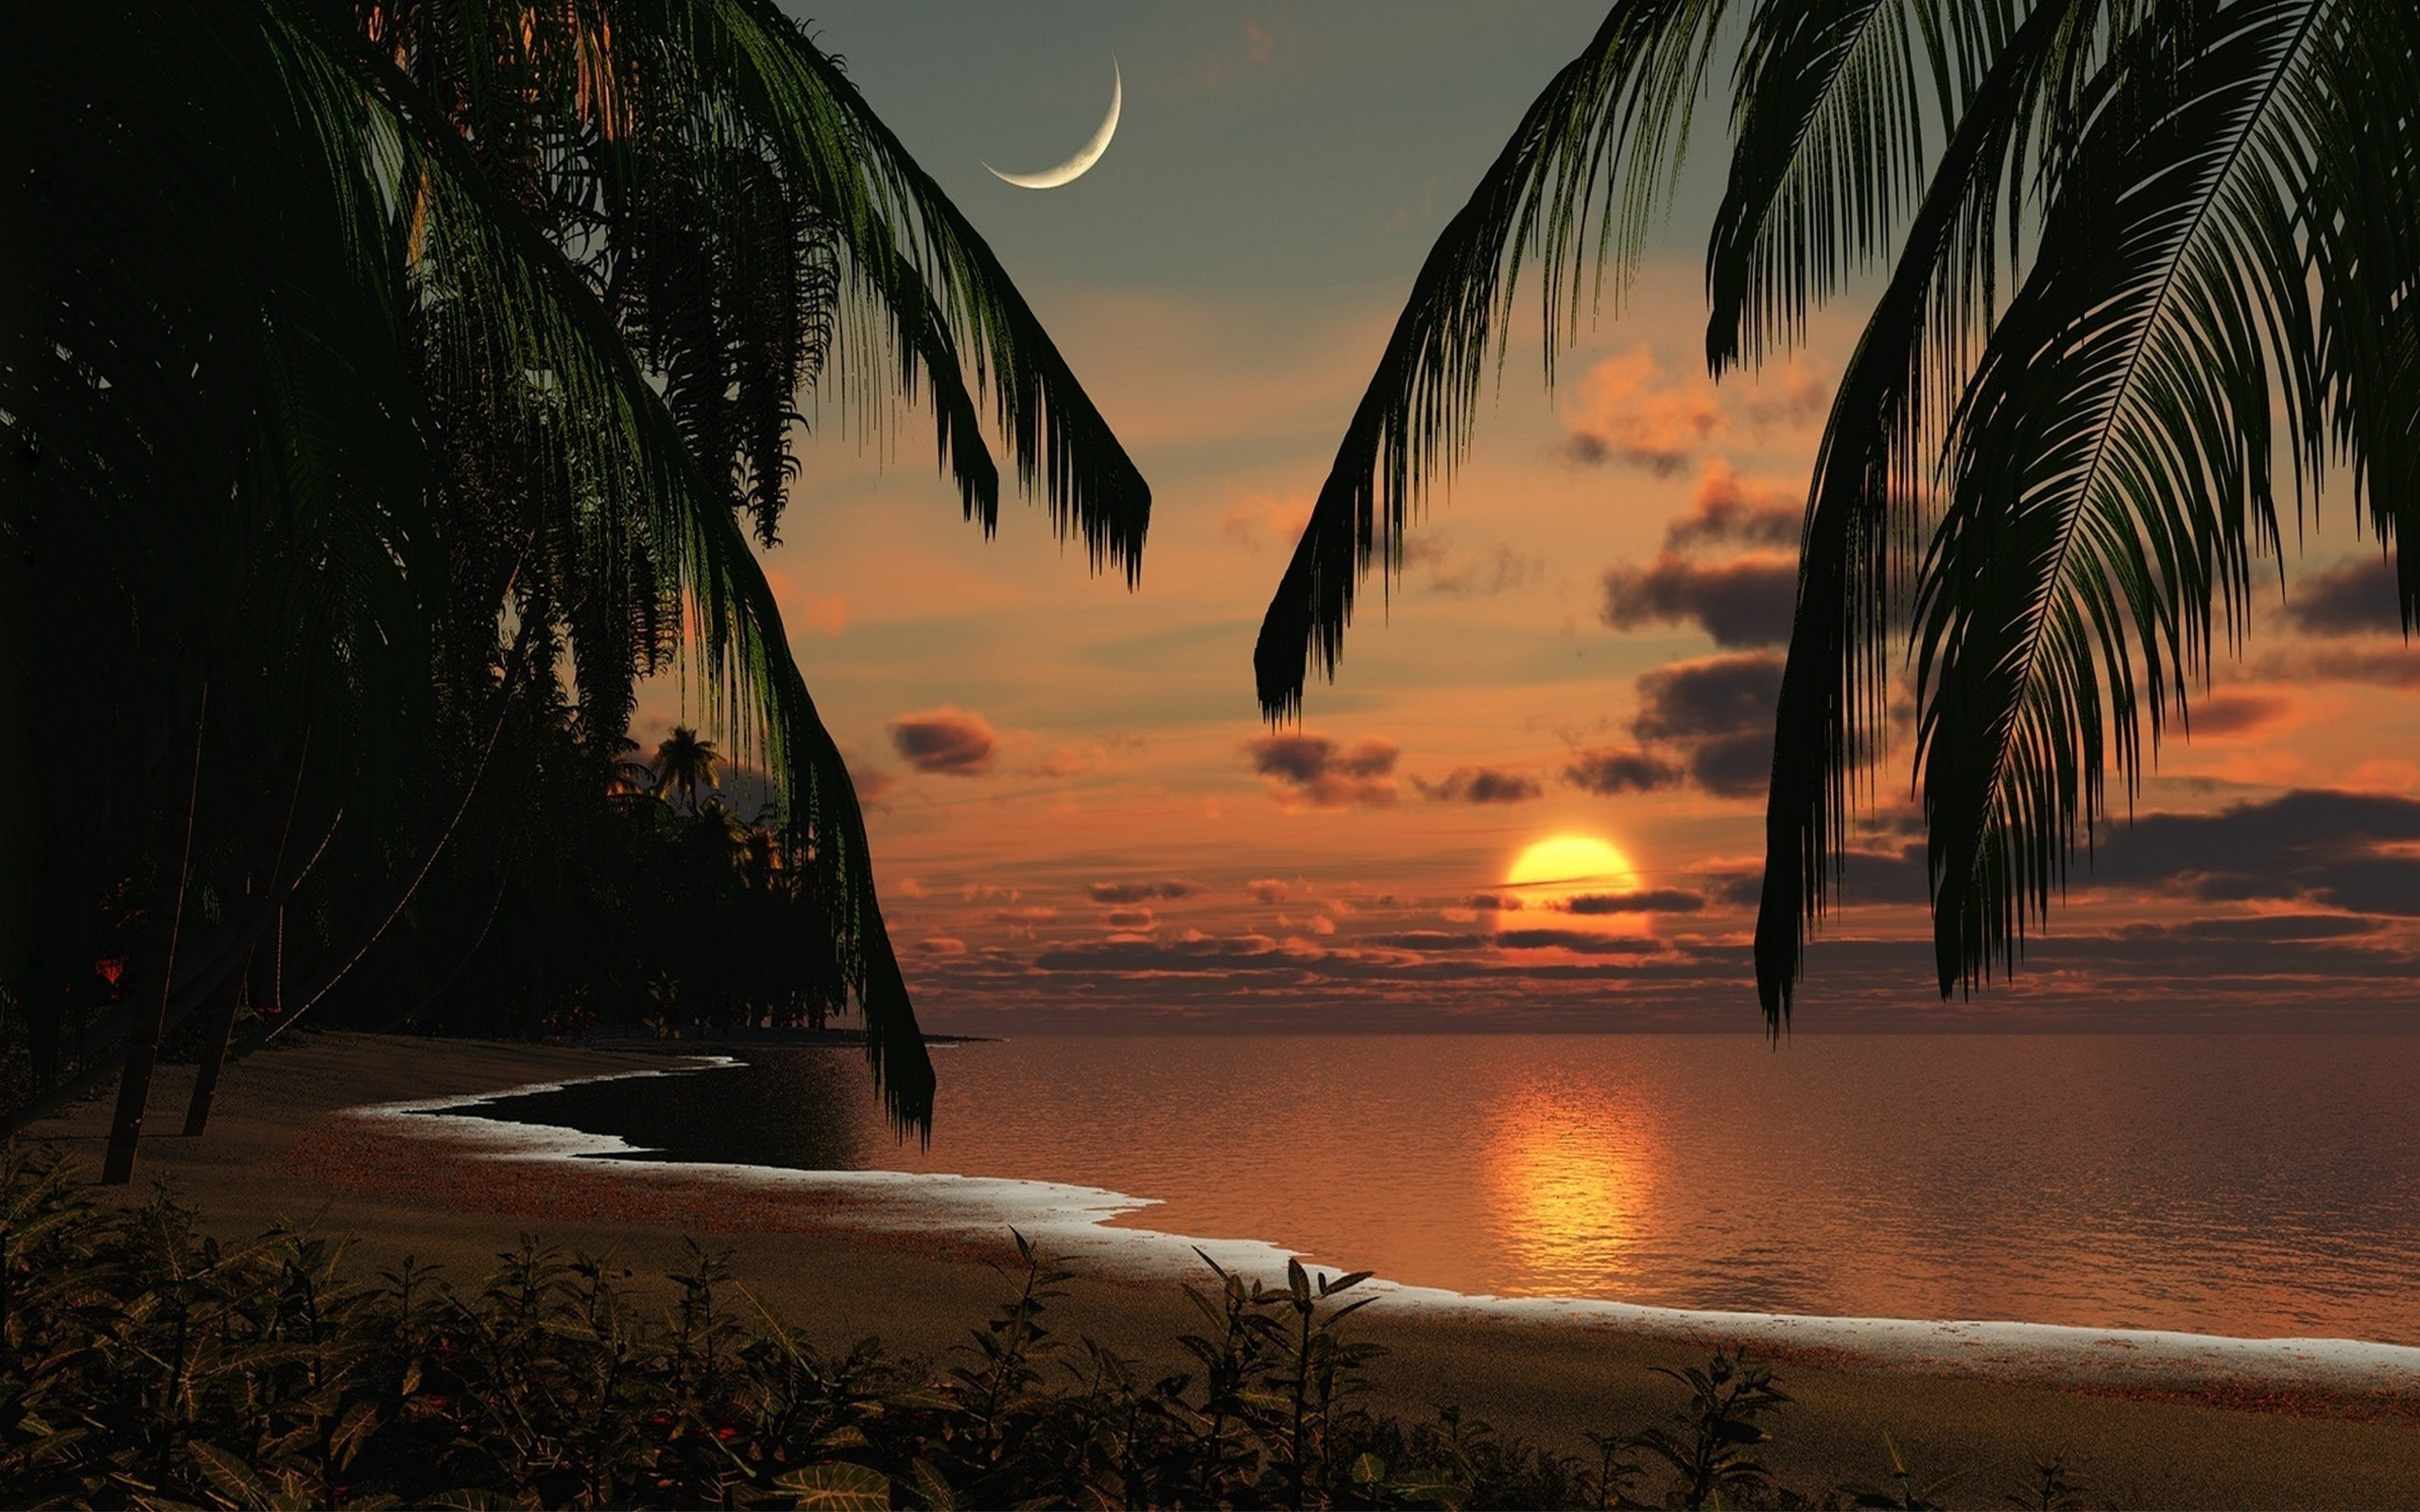 sunrise wallpaper laptop